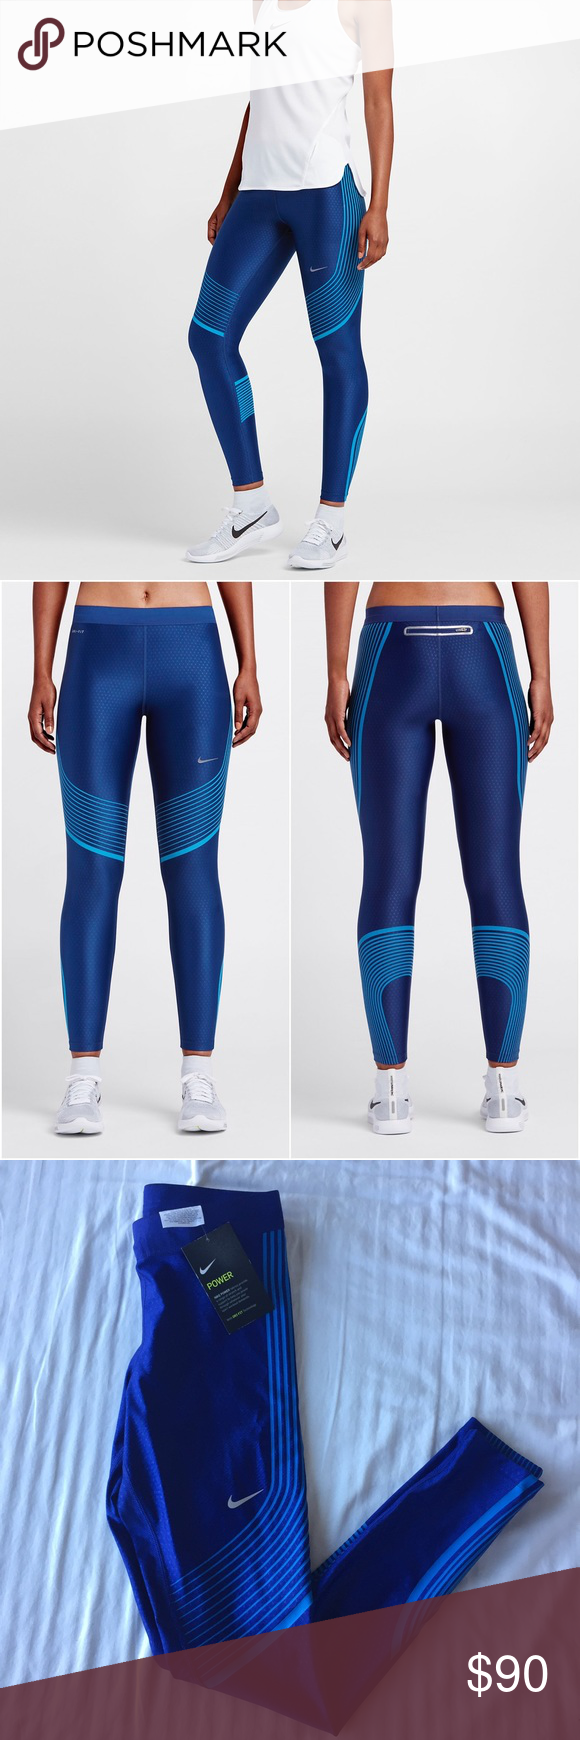 Nike Blue Power Speed Leggings •The Nike Power Speed Women s Running Tights  are designed to encourage every move with a compressive feel throughout and  a ... 897c8b1c985